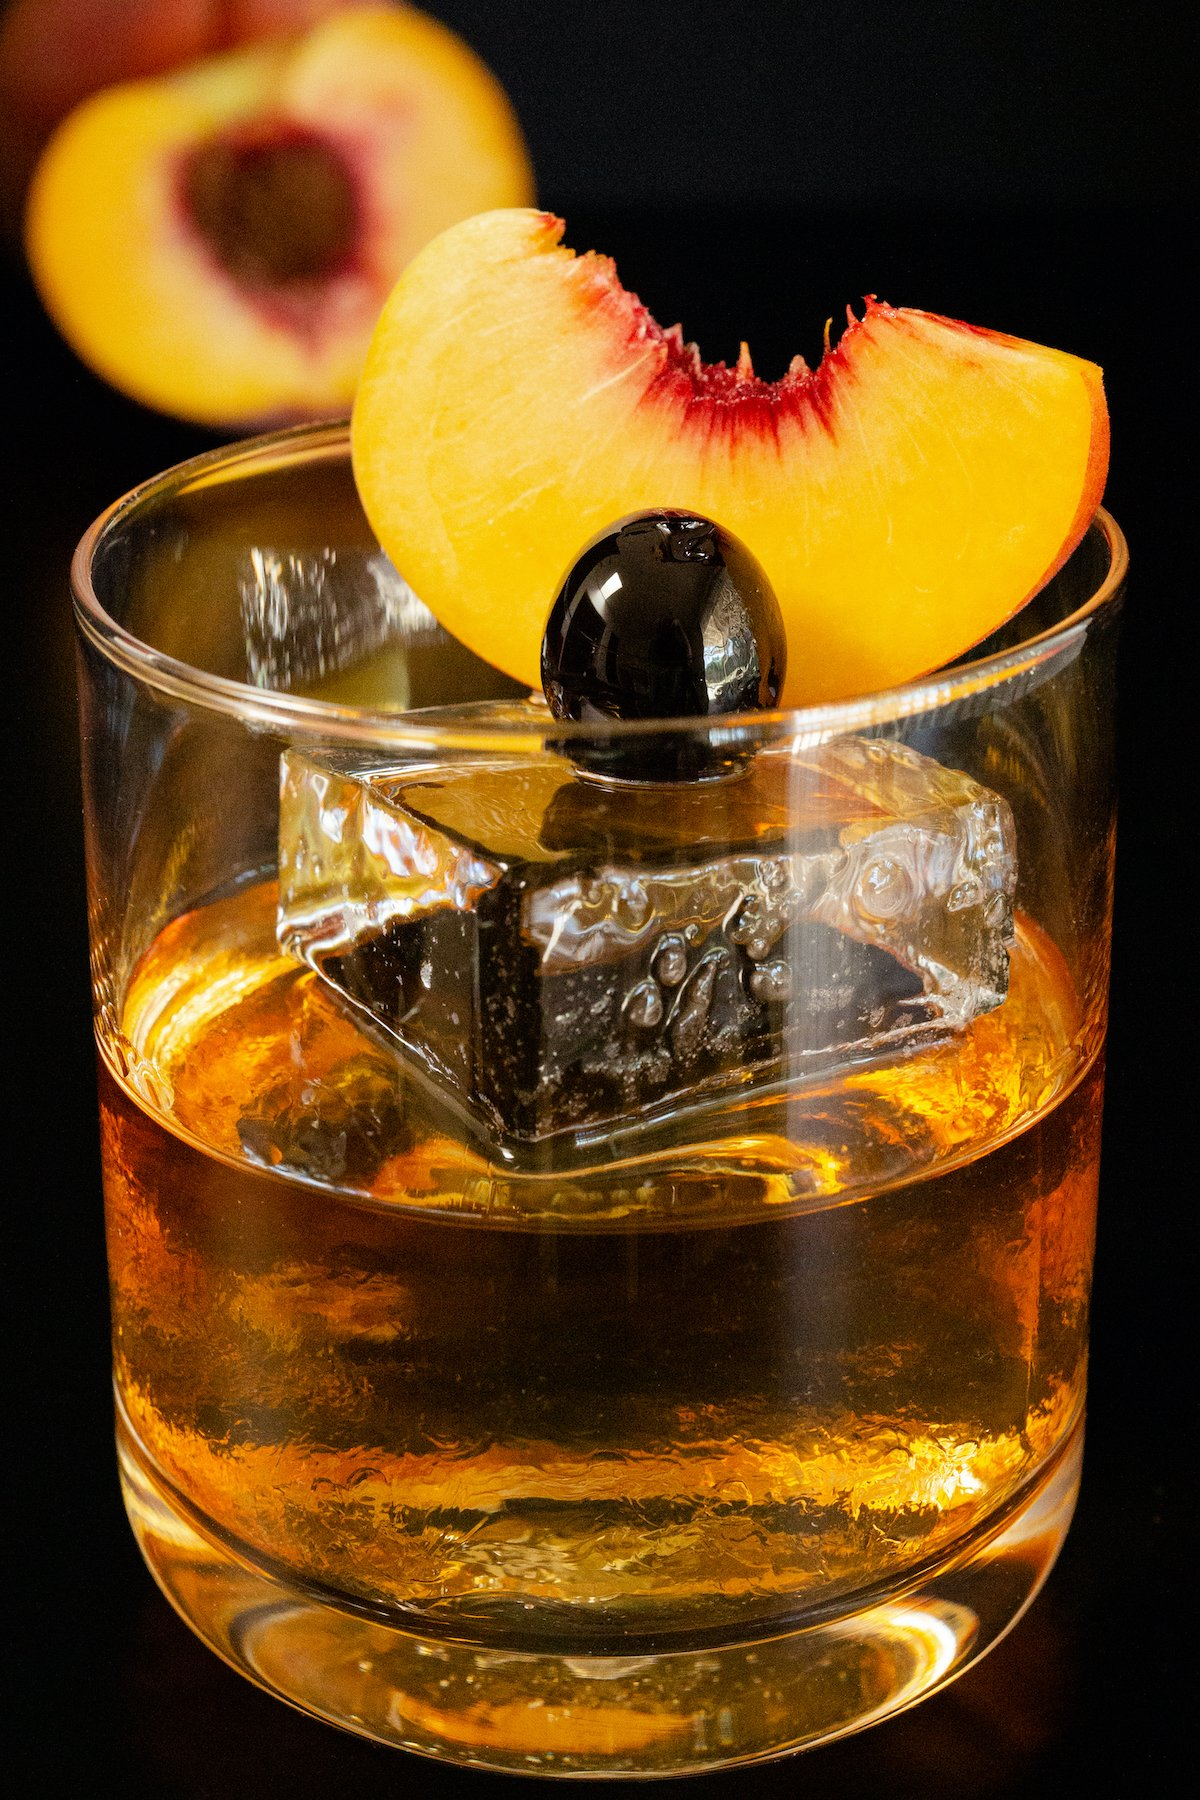 A clear low ball glass is filled halfway with a peach old fashioned. There's a large, clear piece of block ice with a peach slice and maraschino cherry resting on top as garnish.